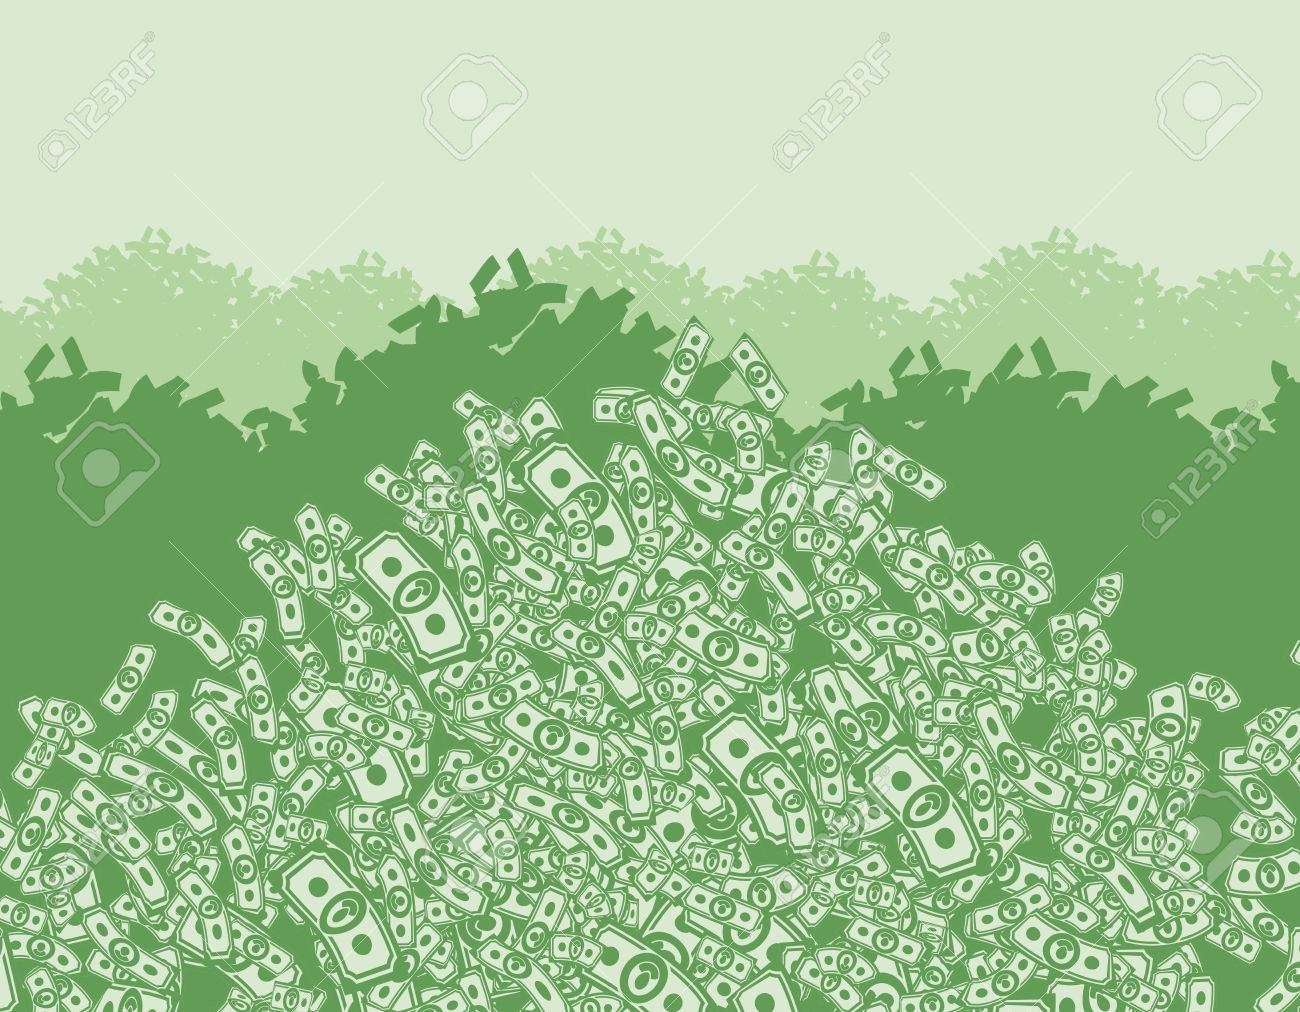 mountain of money, lots of money, wealth, bunch money, money background from dollars - 36514331